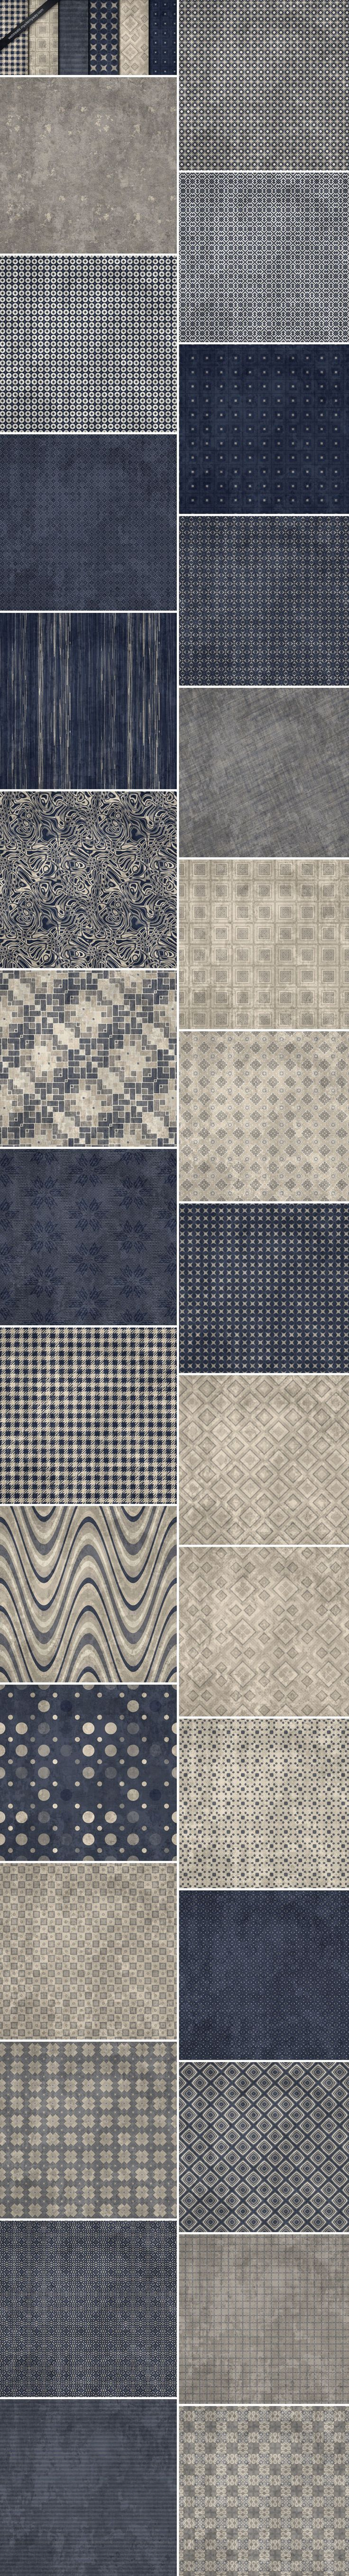 Get your design freebie -  White Washed Blue and Beige Seamless Grunge Patterns…